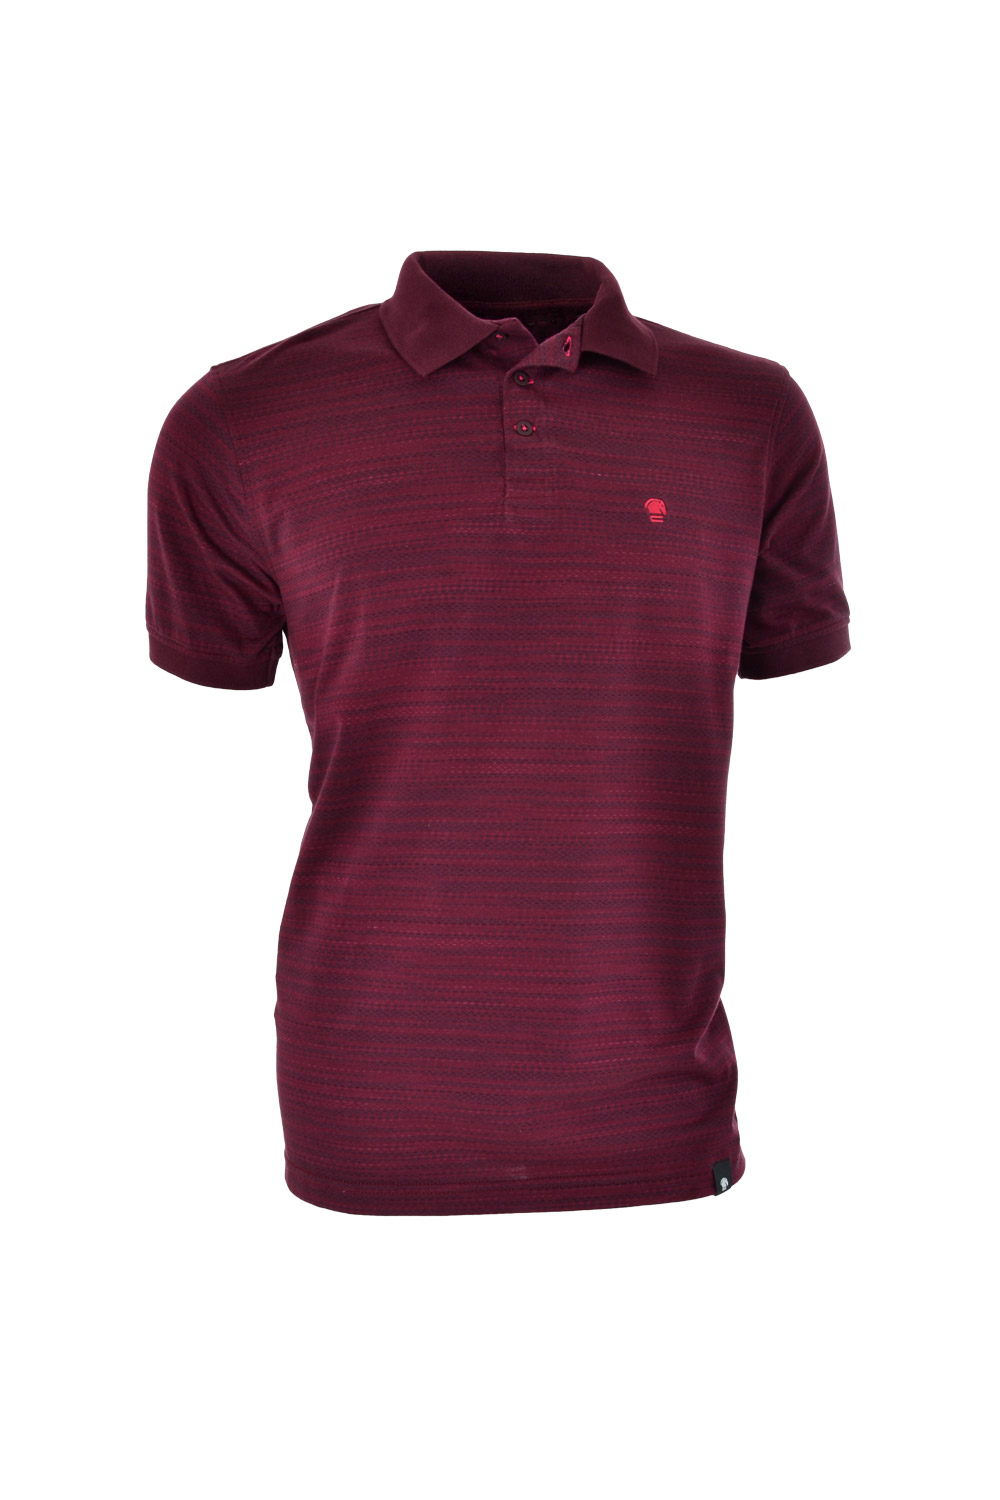 POLO MC CASUAL SLIM POLIALGODAO FIO TINTO MAQUINETADA BORDO